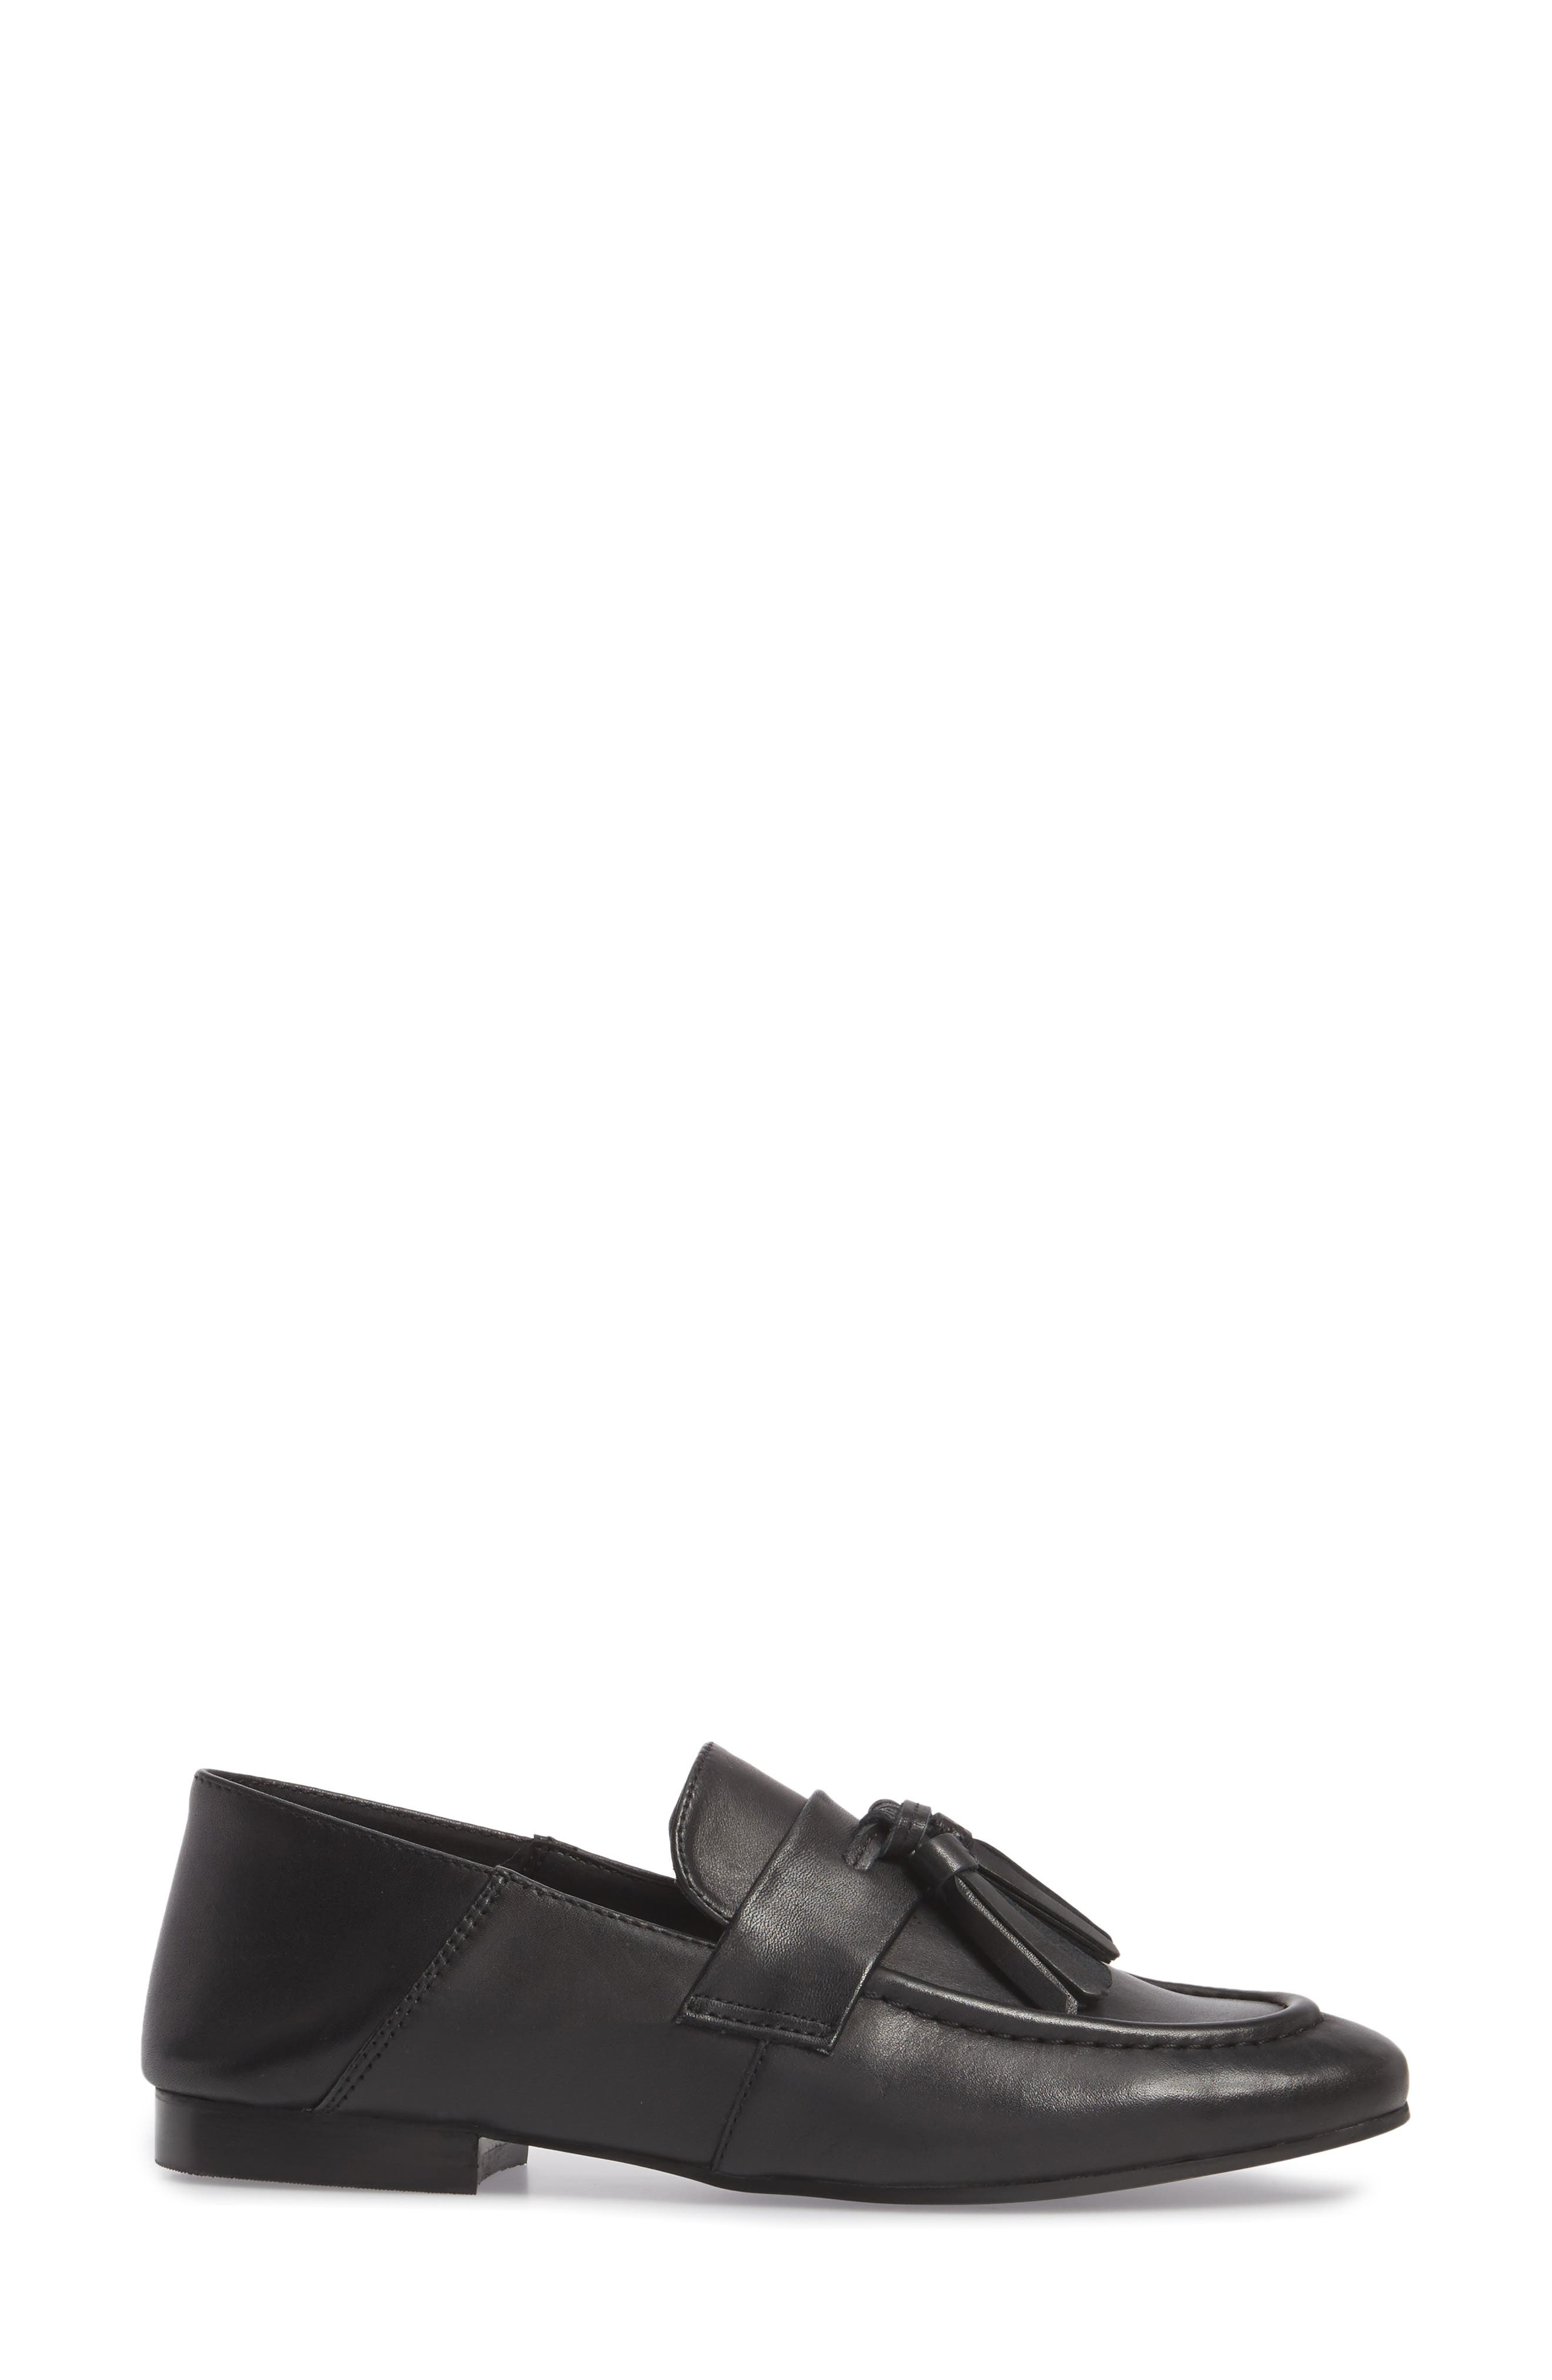 Beck Convertible Tasseled Loafer,                             Alternate thumbnail 3, color,                             Black Leather